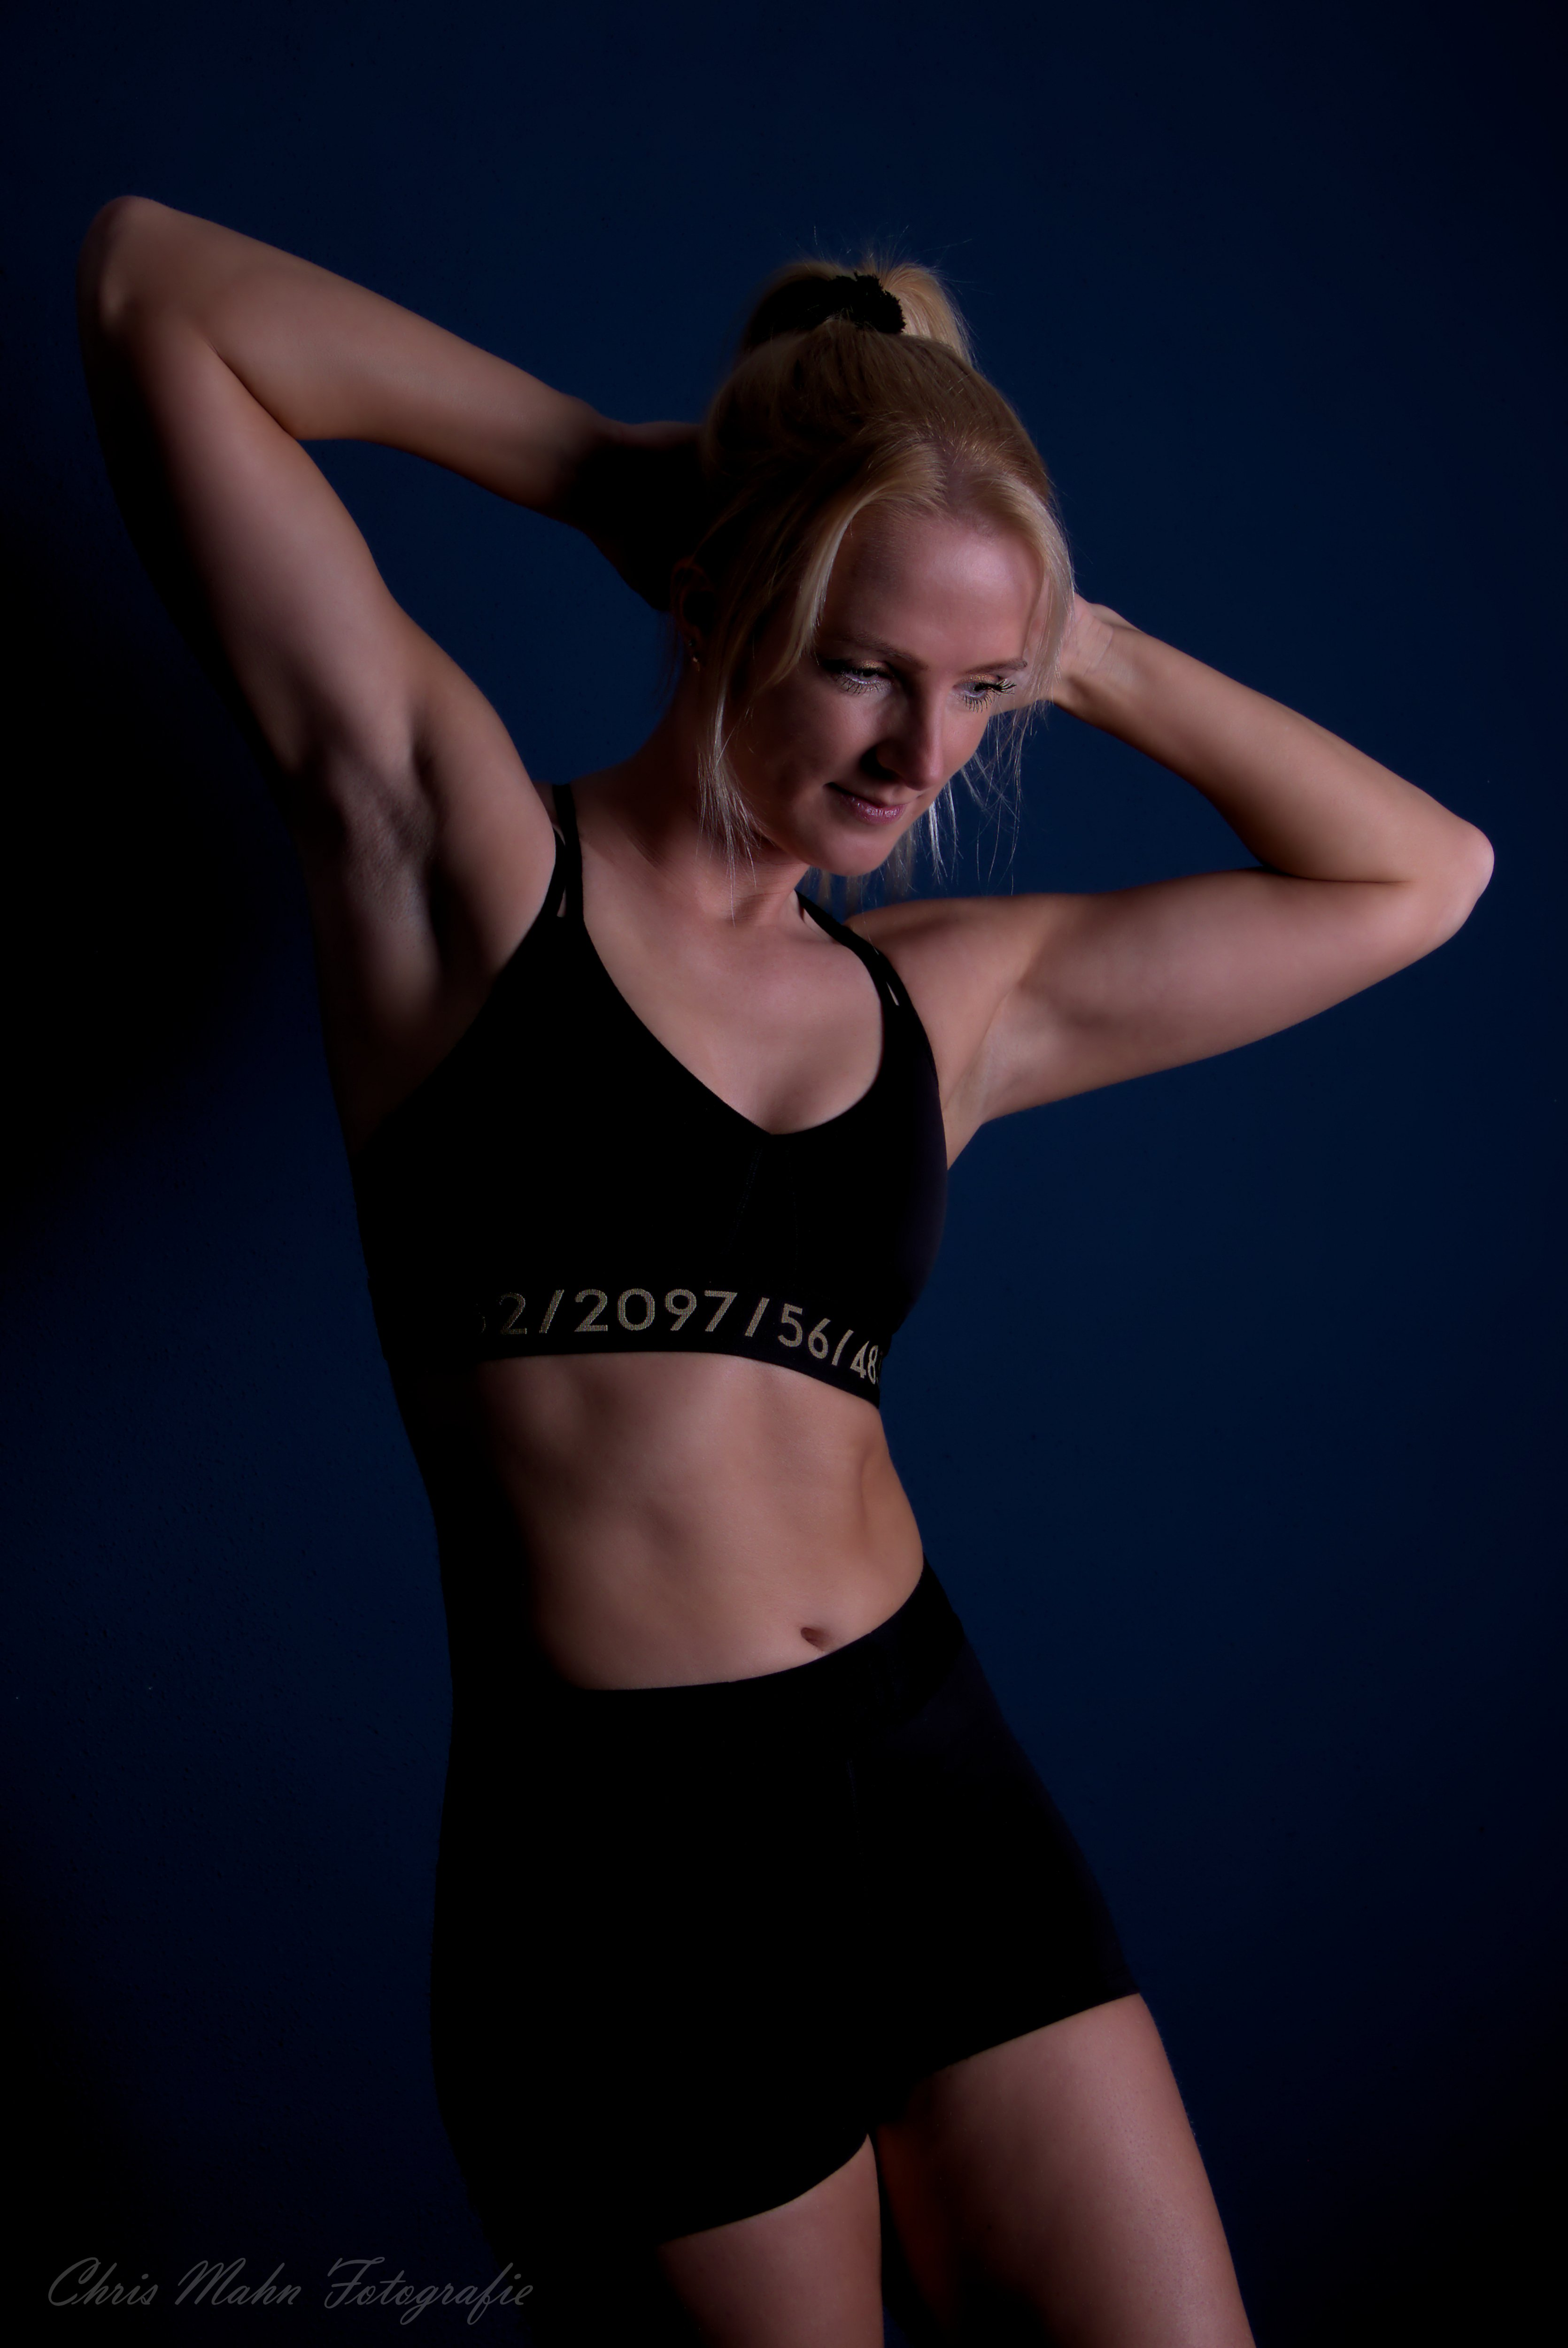 WEBSITE SPORT & FITNESS There is that face 2616